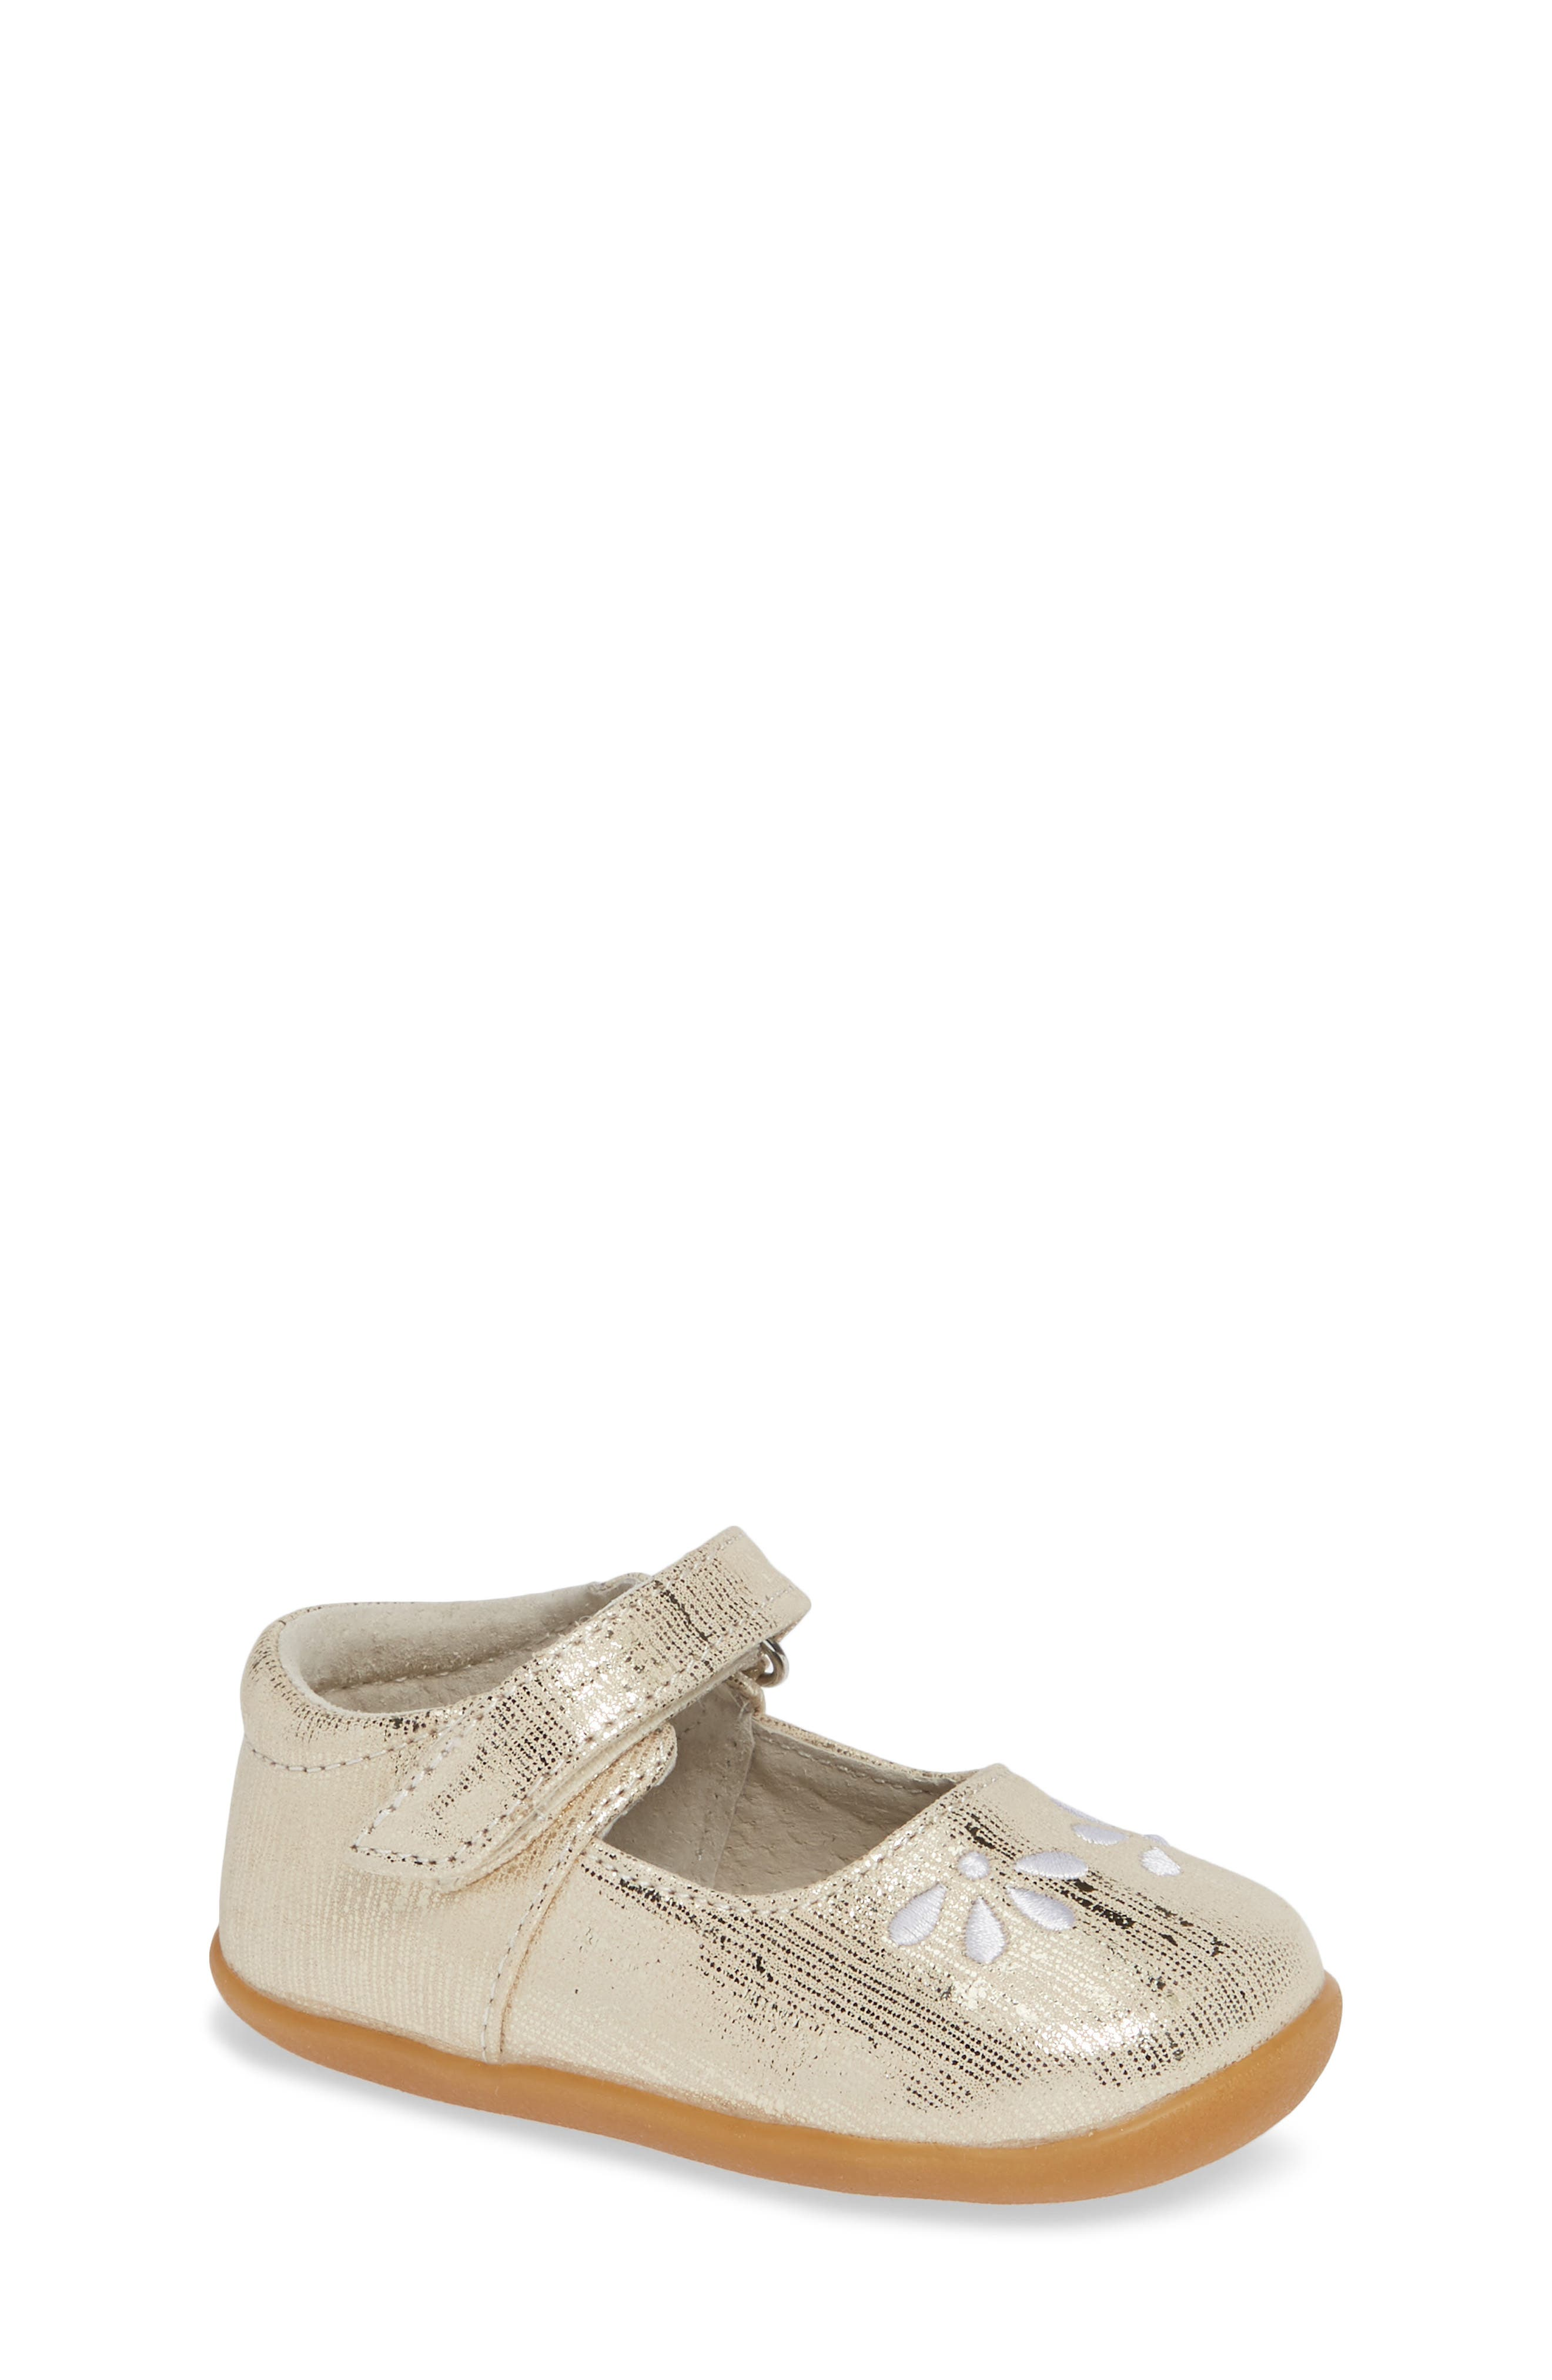 SEE KAI RUN Ginny Embroidered Metallic Mary Jane, Main, color, GOLD